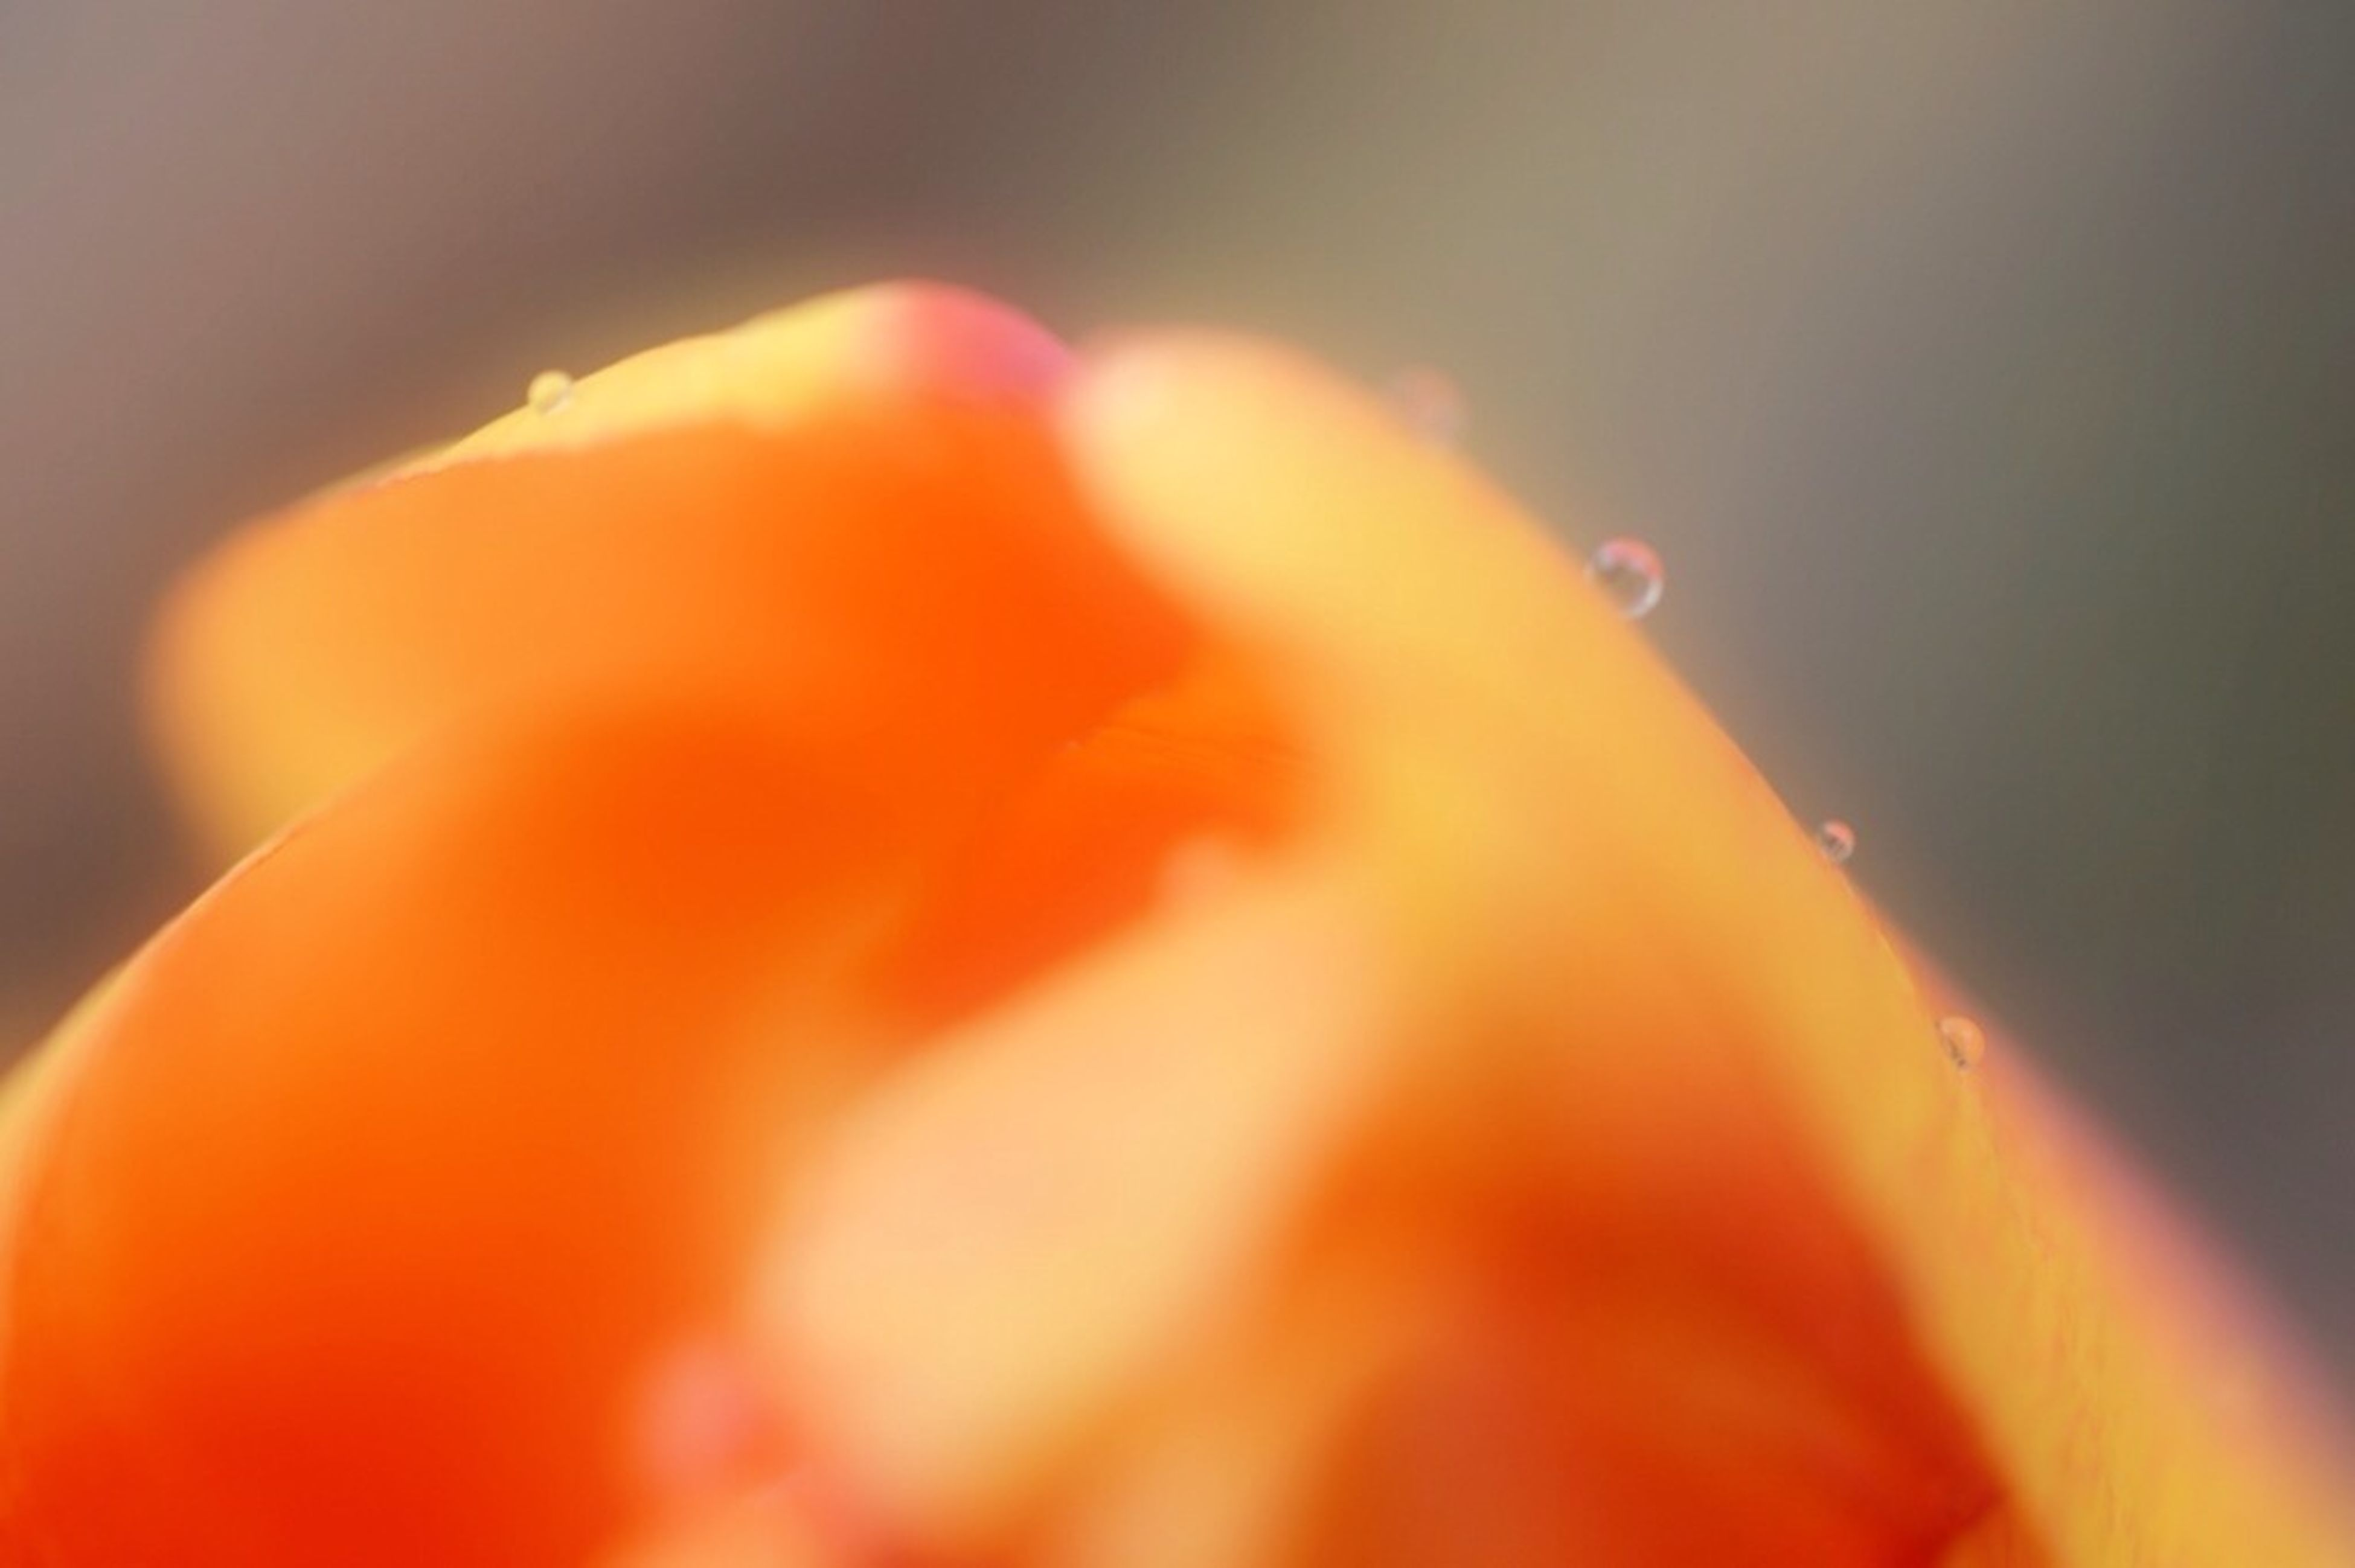 close-up, selective focus, orange color, focus on foreground, freshness, flower, beauty in nature, fragility, petal, nature, growth, no people, red, outdoors, yellow, flower head, single flower, day, macro, part of